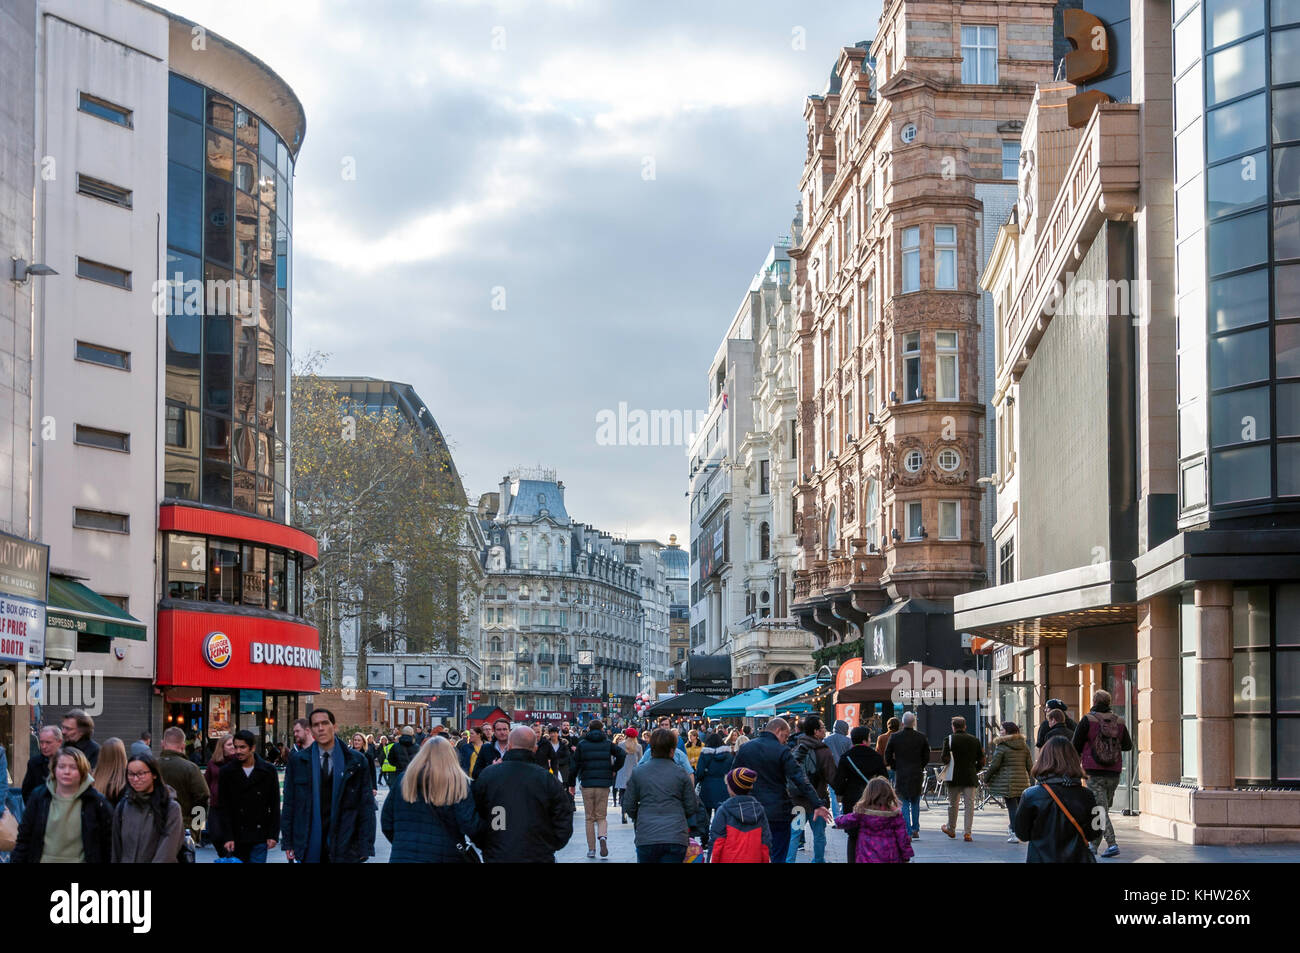 Cranbourn Street, Leicester Square, West End, City of Westminster, Greater London, England, United Kingdom Stock Photo